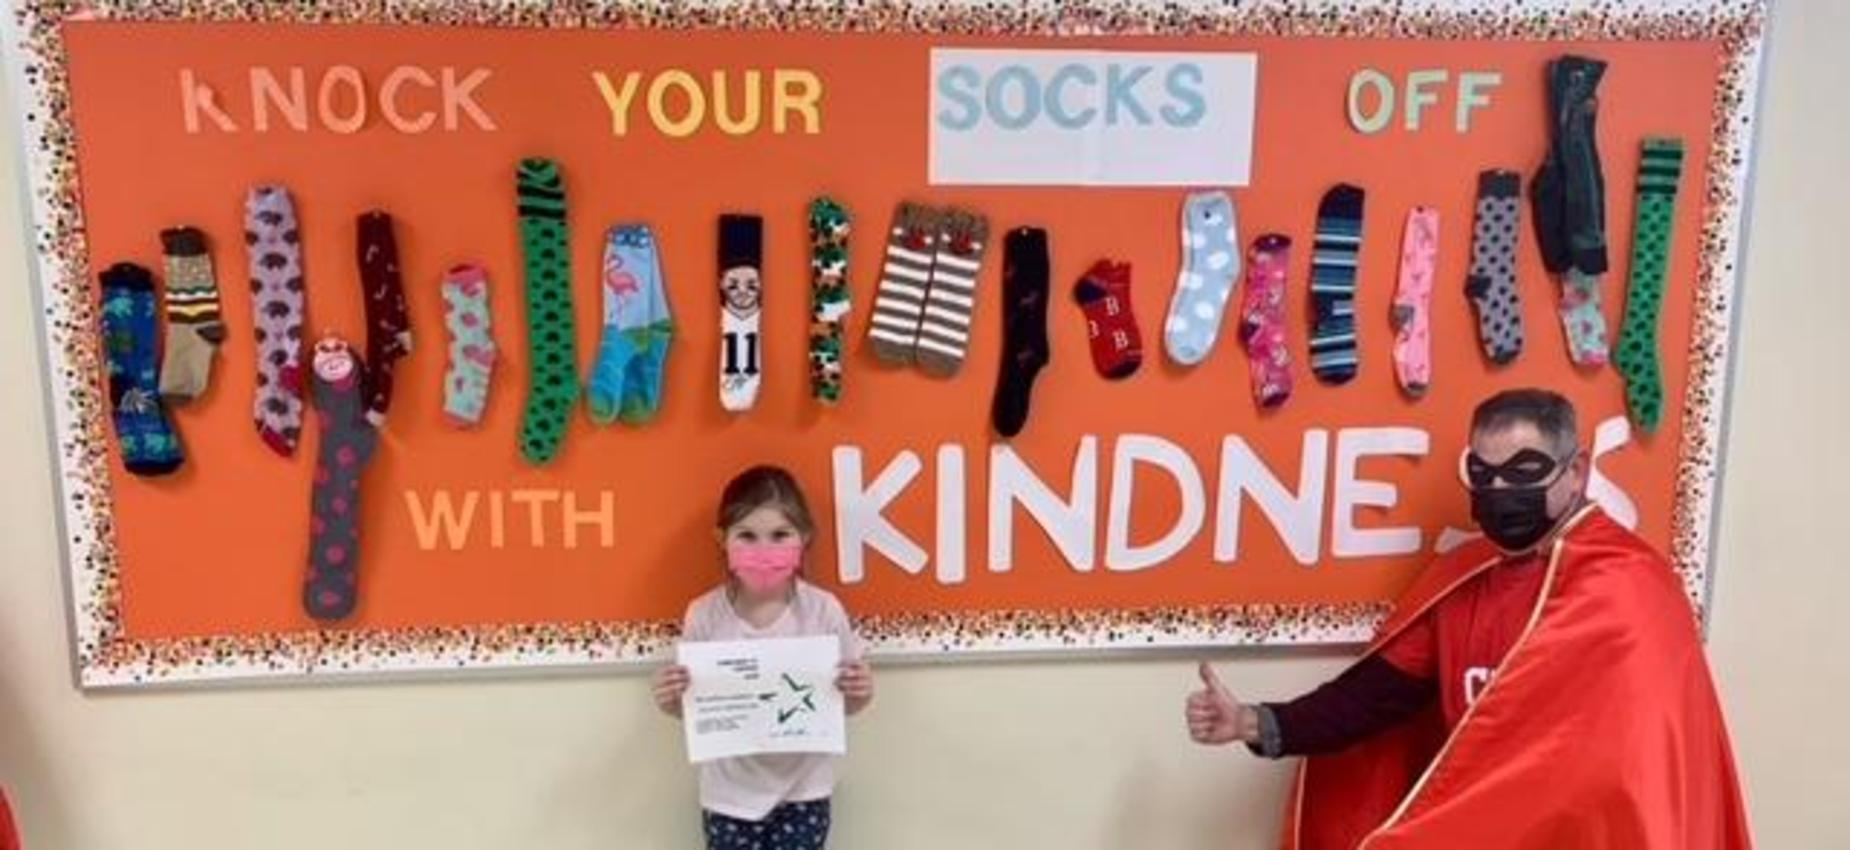 Kindness award picture